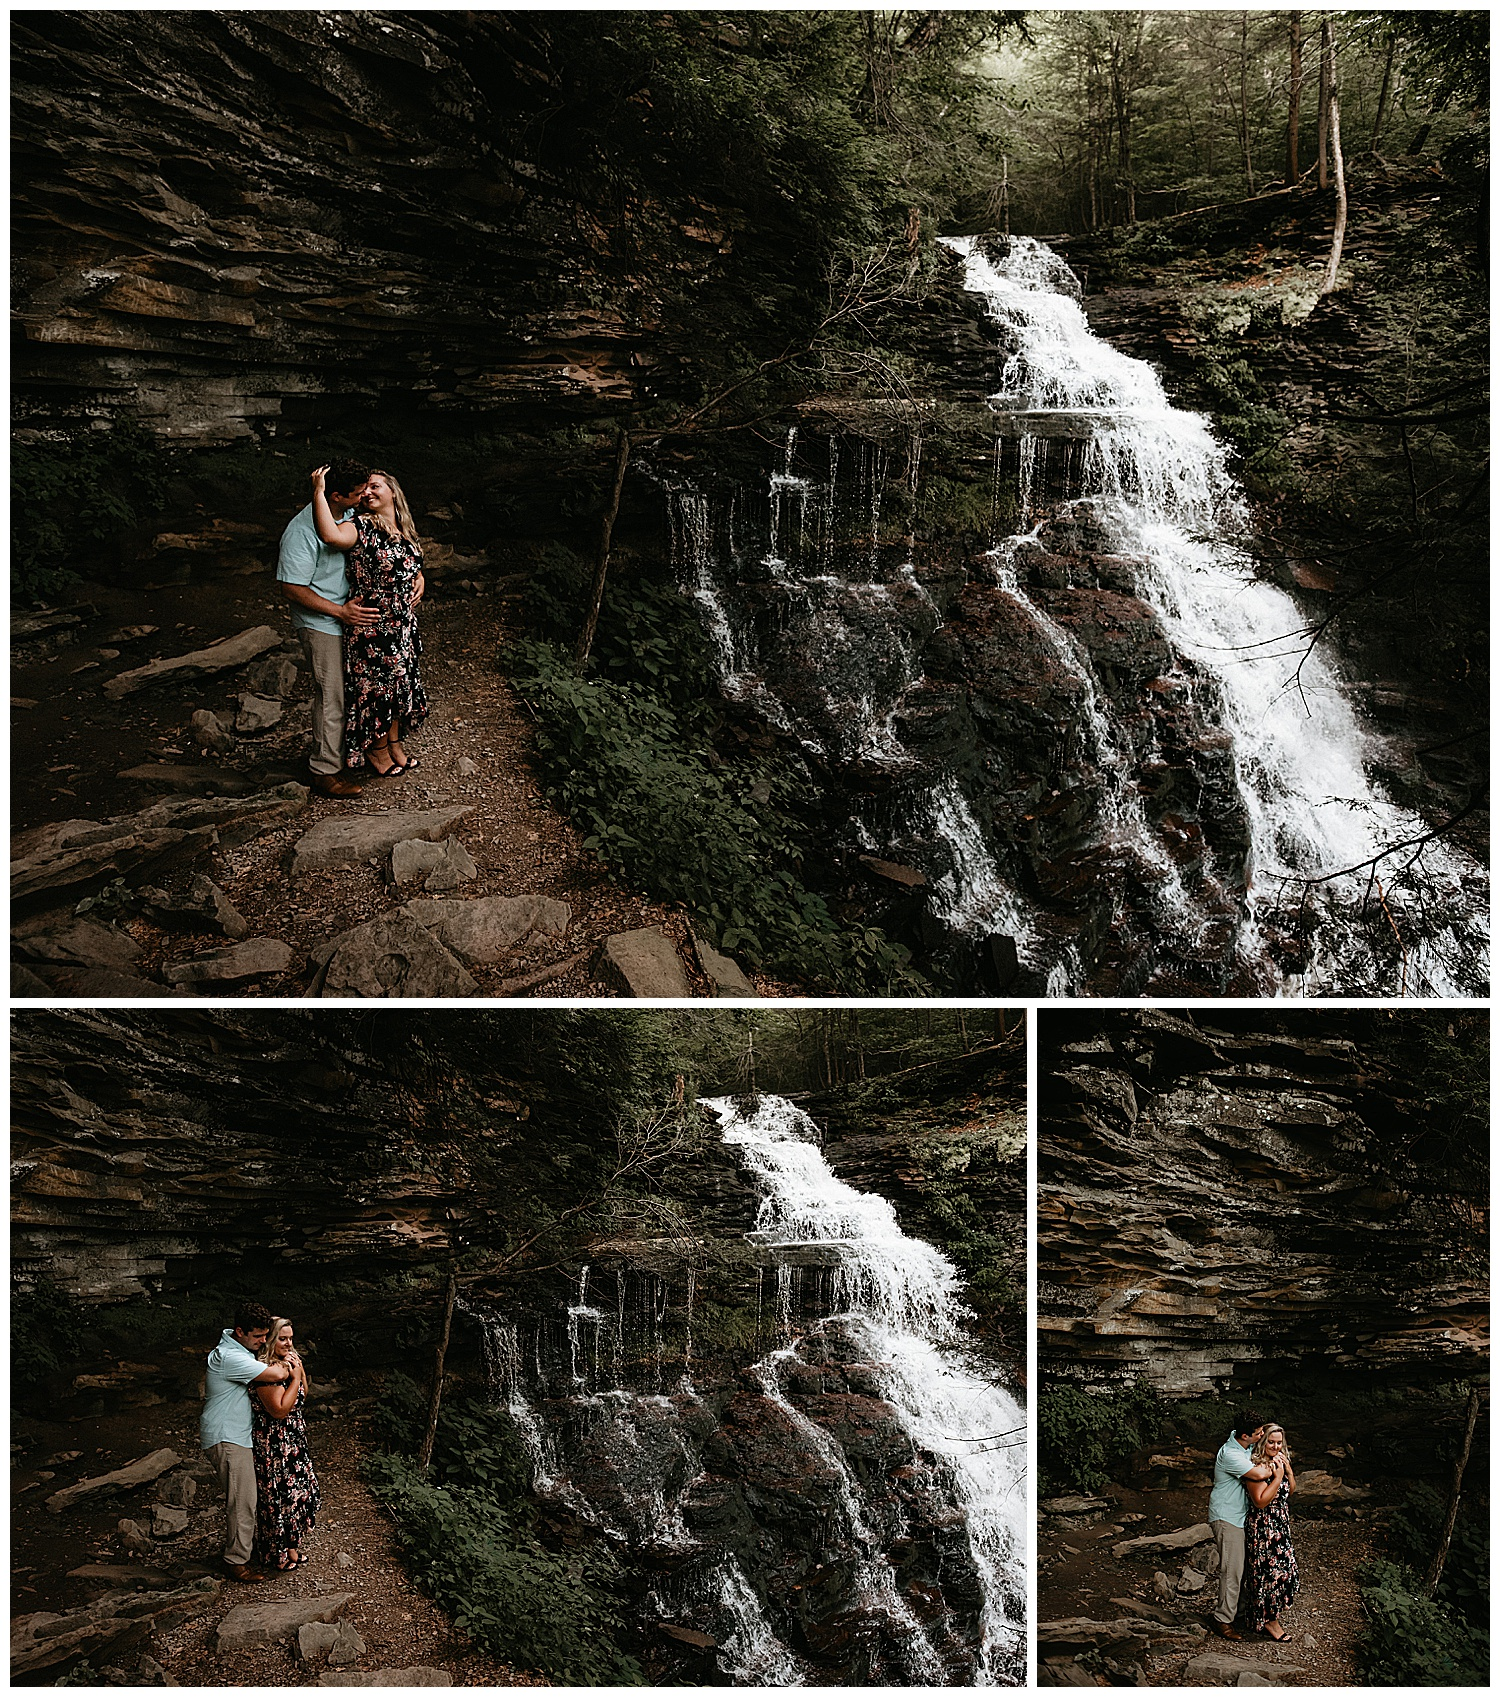 NEPA-Bloomsburg-Lehigh-Valley-Wedding-Photographer-Engagement-session-at-Ricketts-Glen-State-Park_0014.jpg